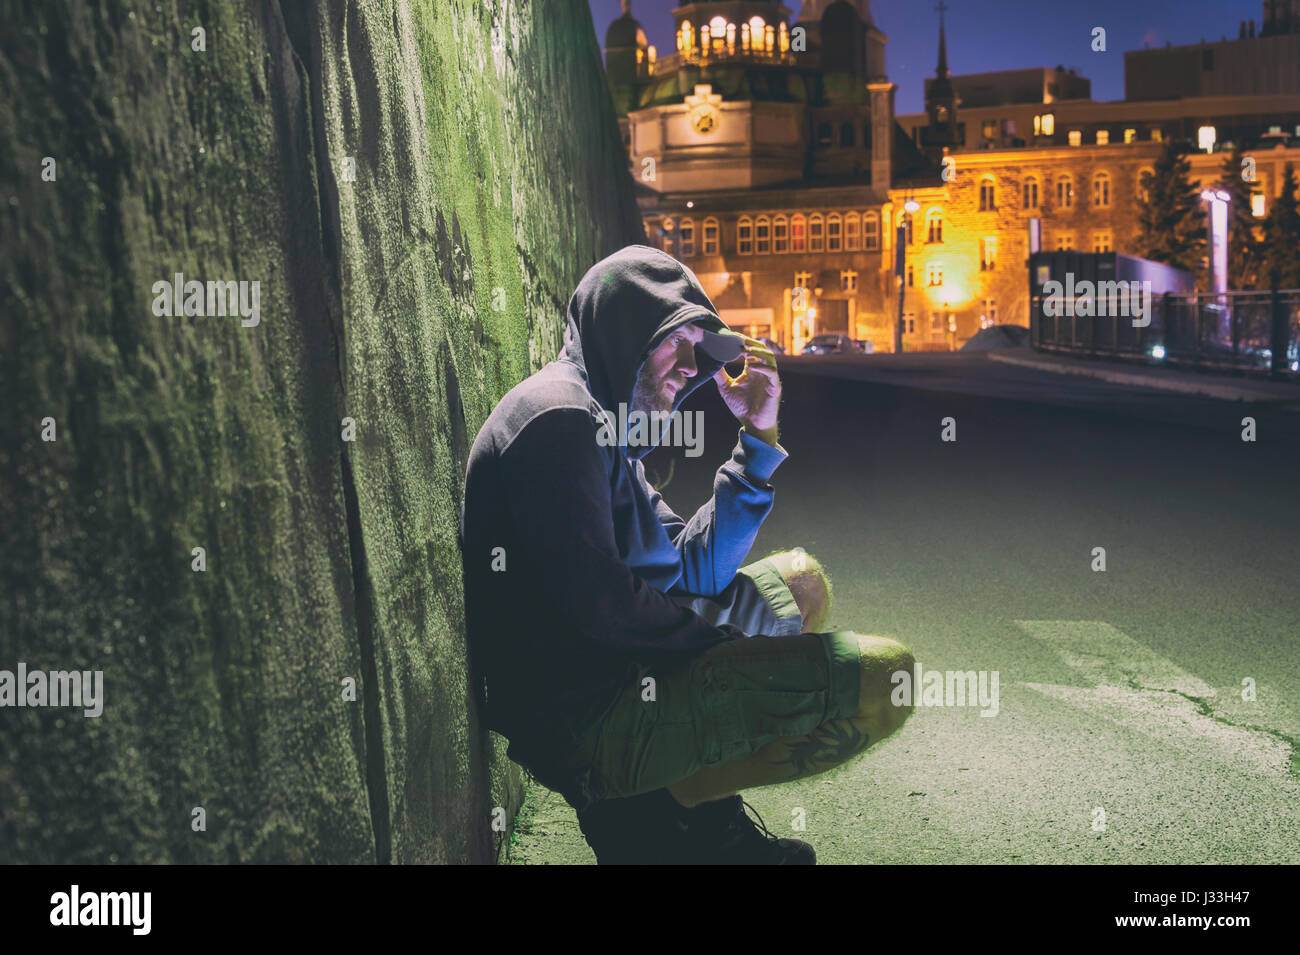 Sad and lonely man with hoodie sitting against a wall at night - Stock Image